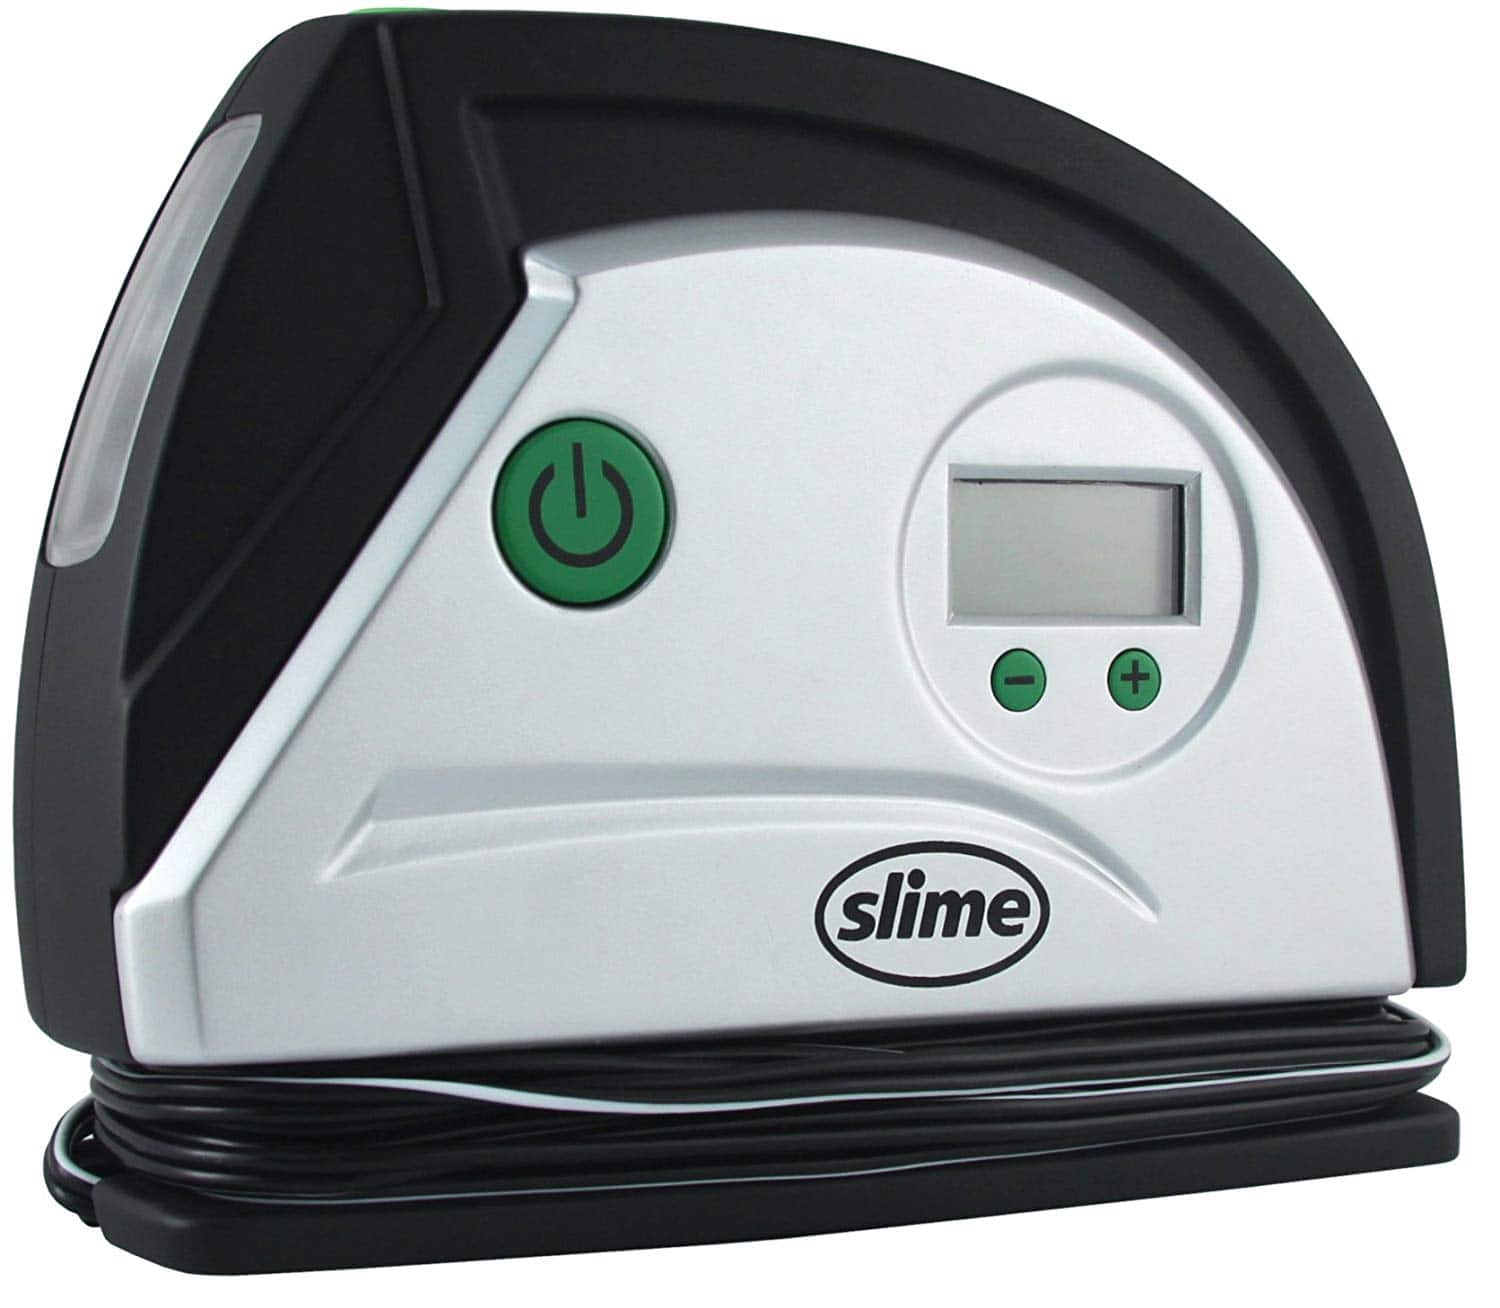 Slime 40051 Digital Tire Inflator with Auto Shutoff $19.88 @Amazon